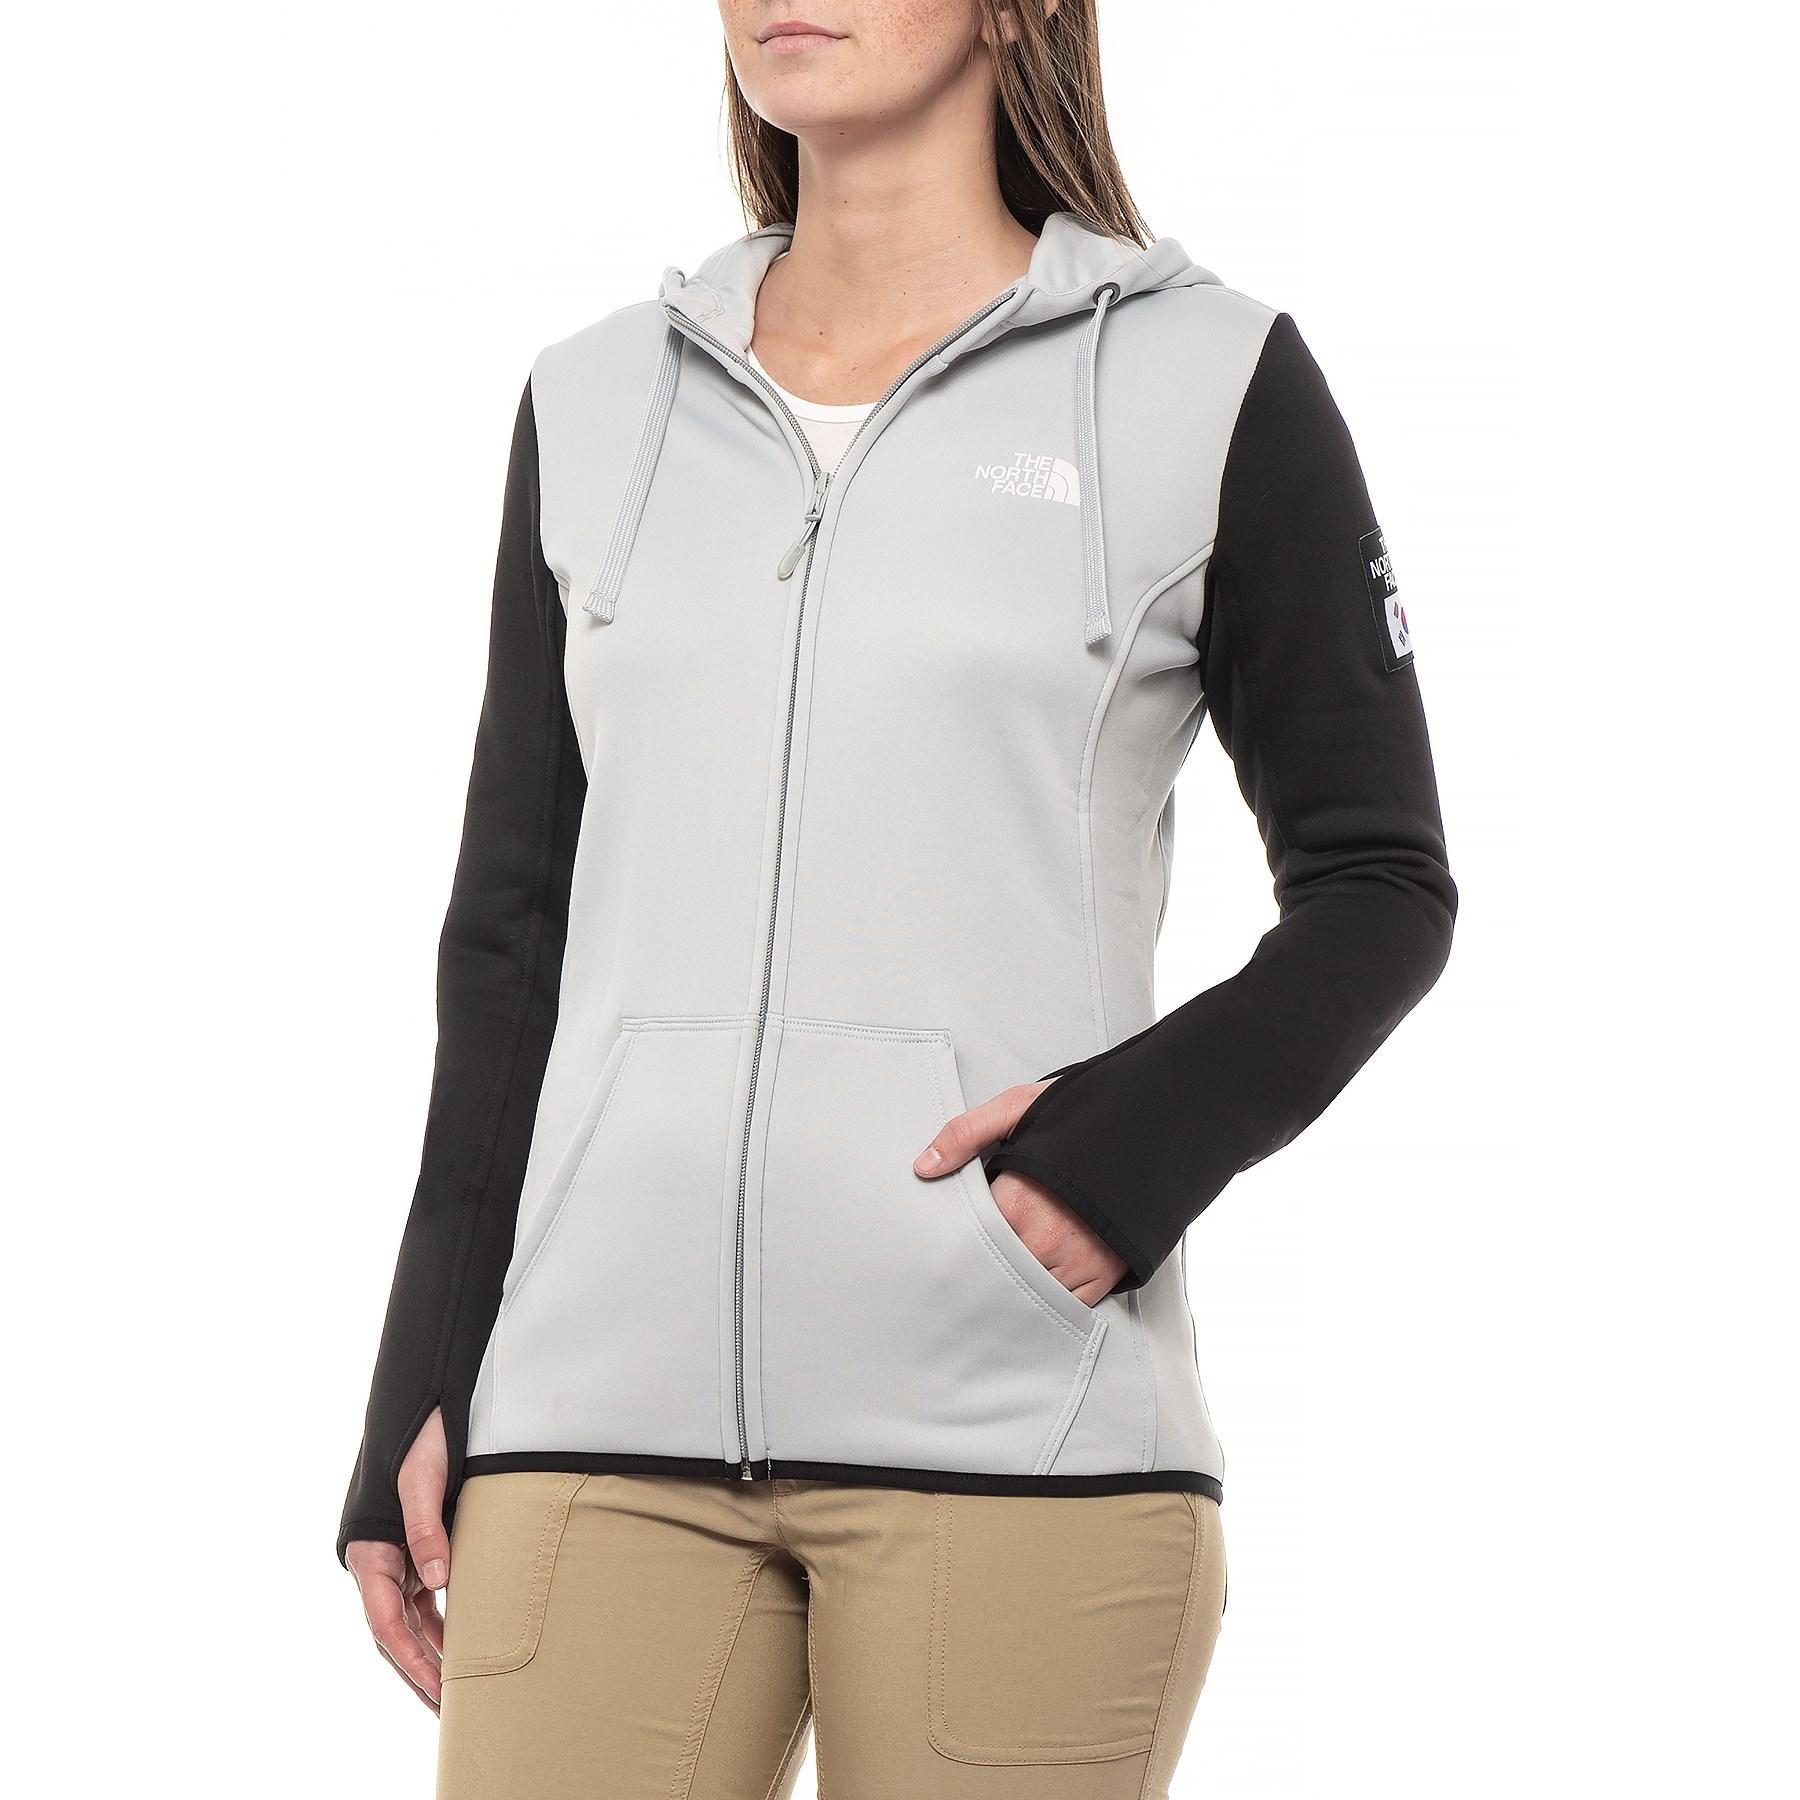 Lyst - The North Face Ic Half Dome Hoodie (for Women) in Gray ca8a2789c